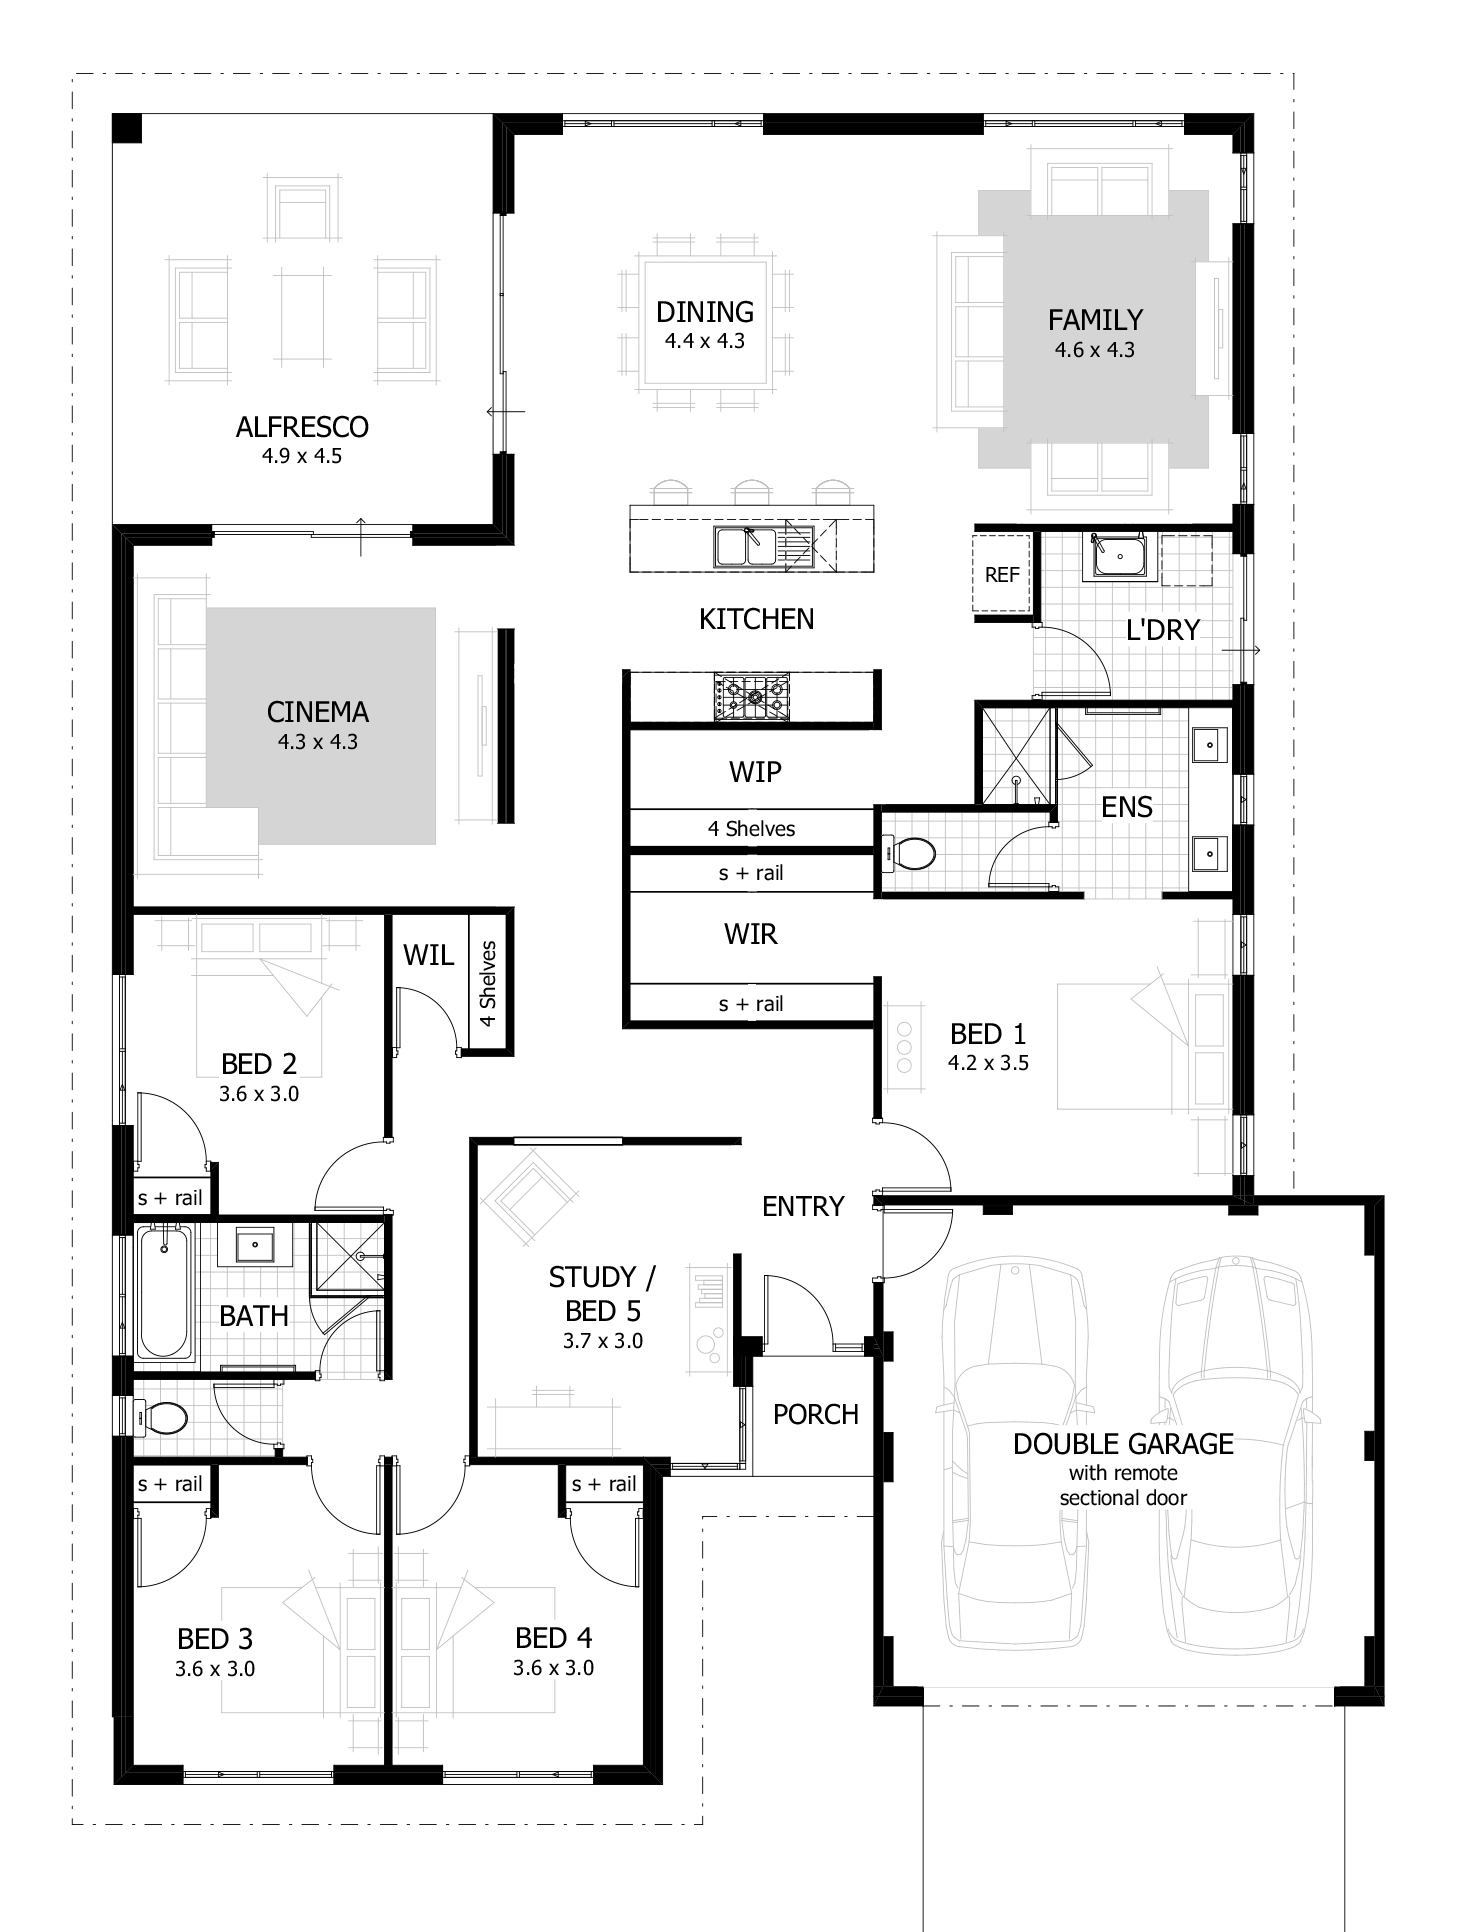 Modular 4 Bedroom House Plans & Home Designs | Celebration Homes intended for Home Design Plans With Photos